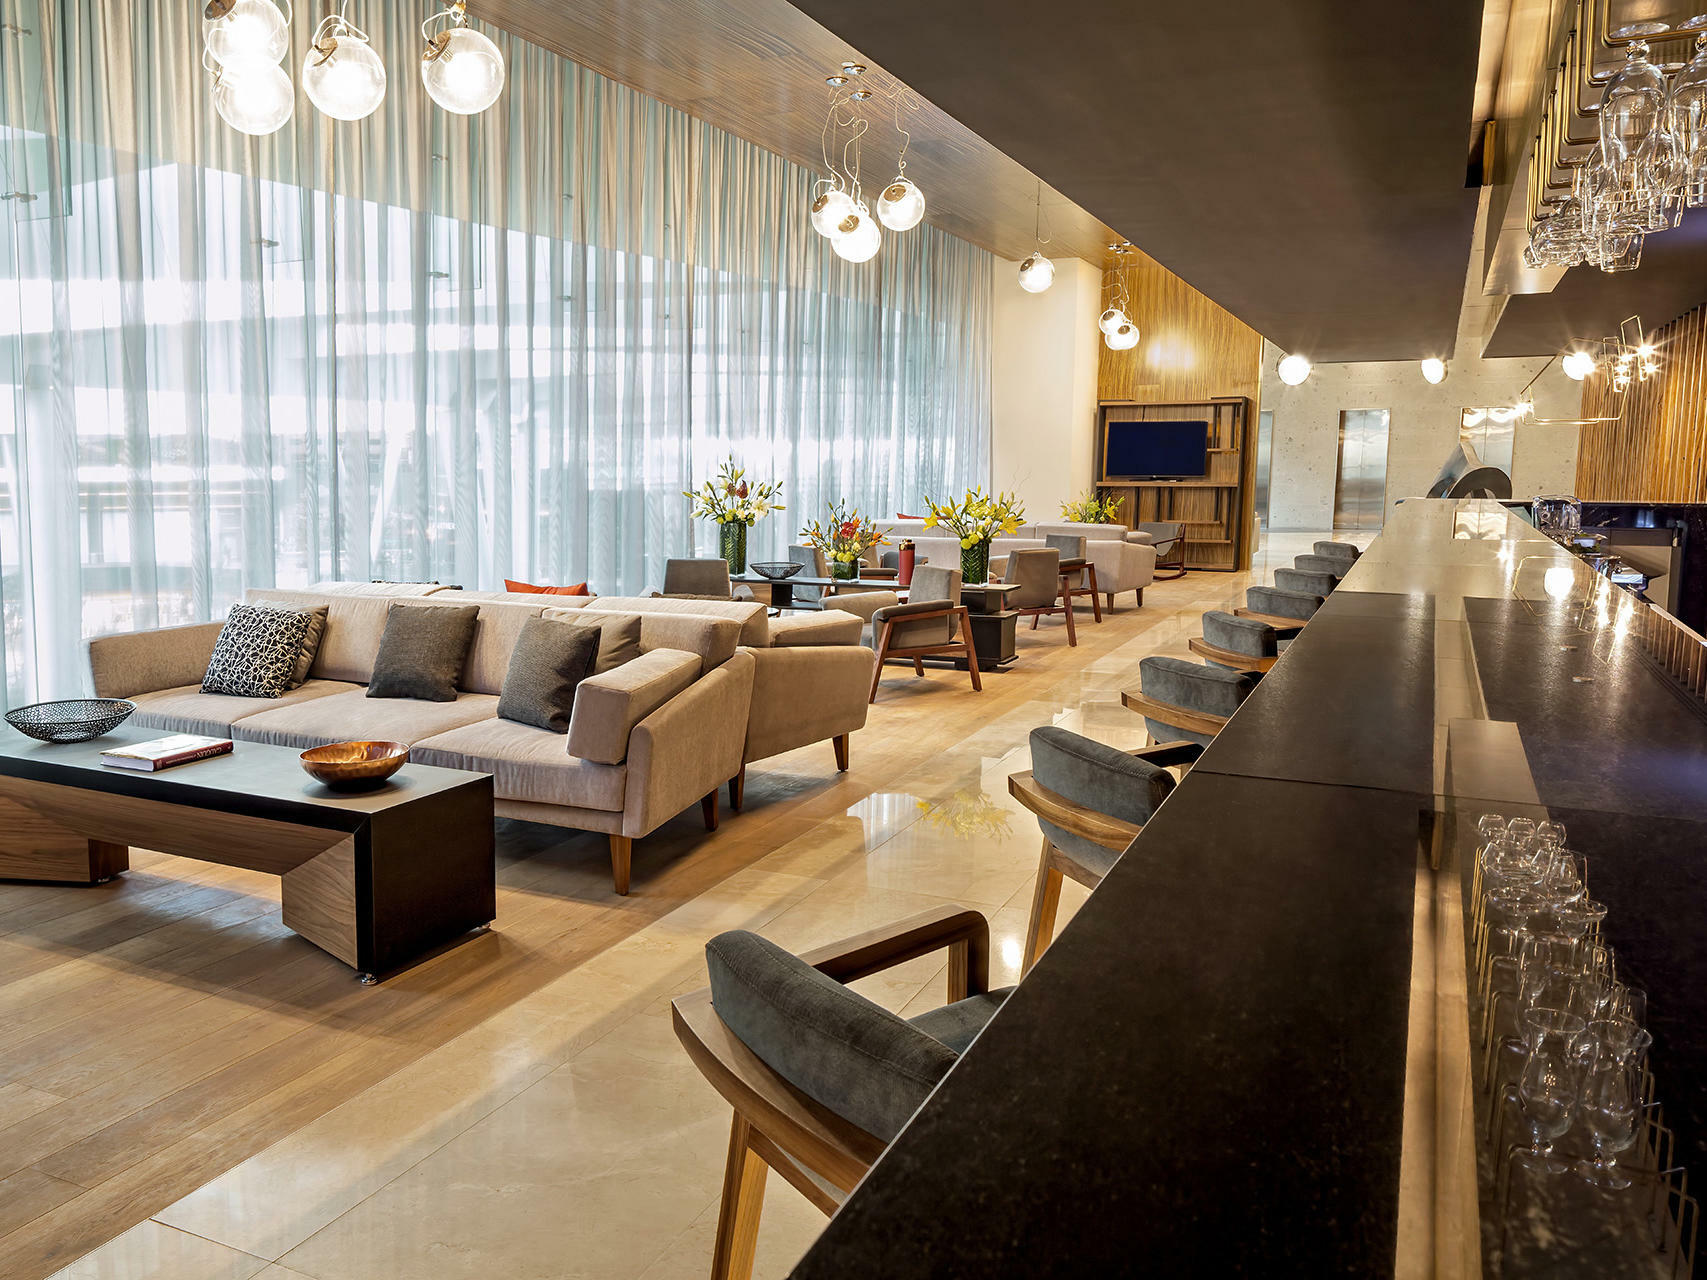 bar with bar stools and lounge seating